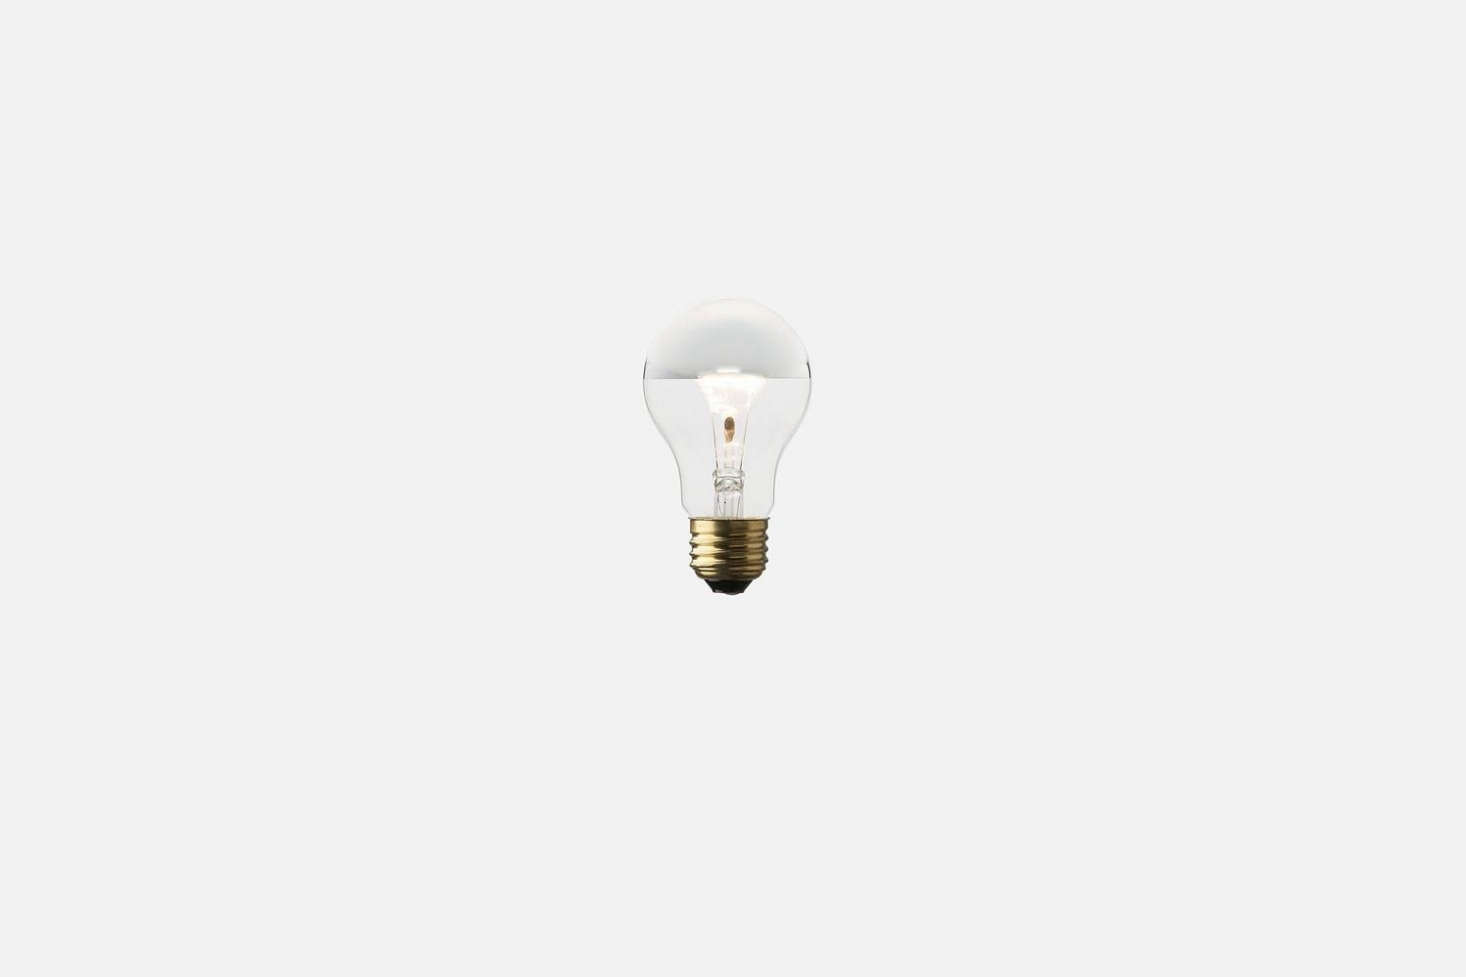 Pairthe light with aSilver-Tipped Bulb for$8 from Schoolhouse Electric.